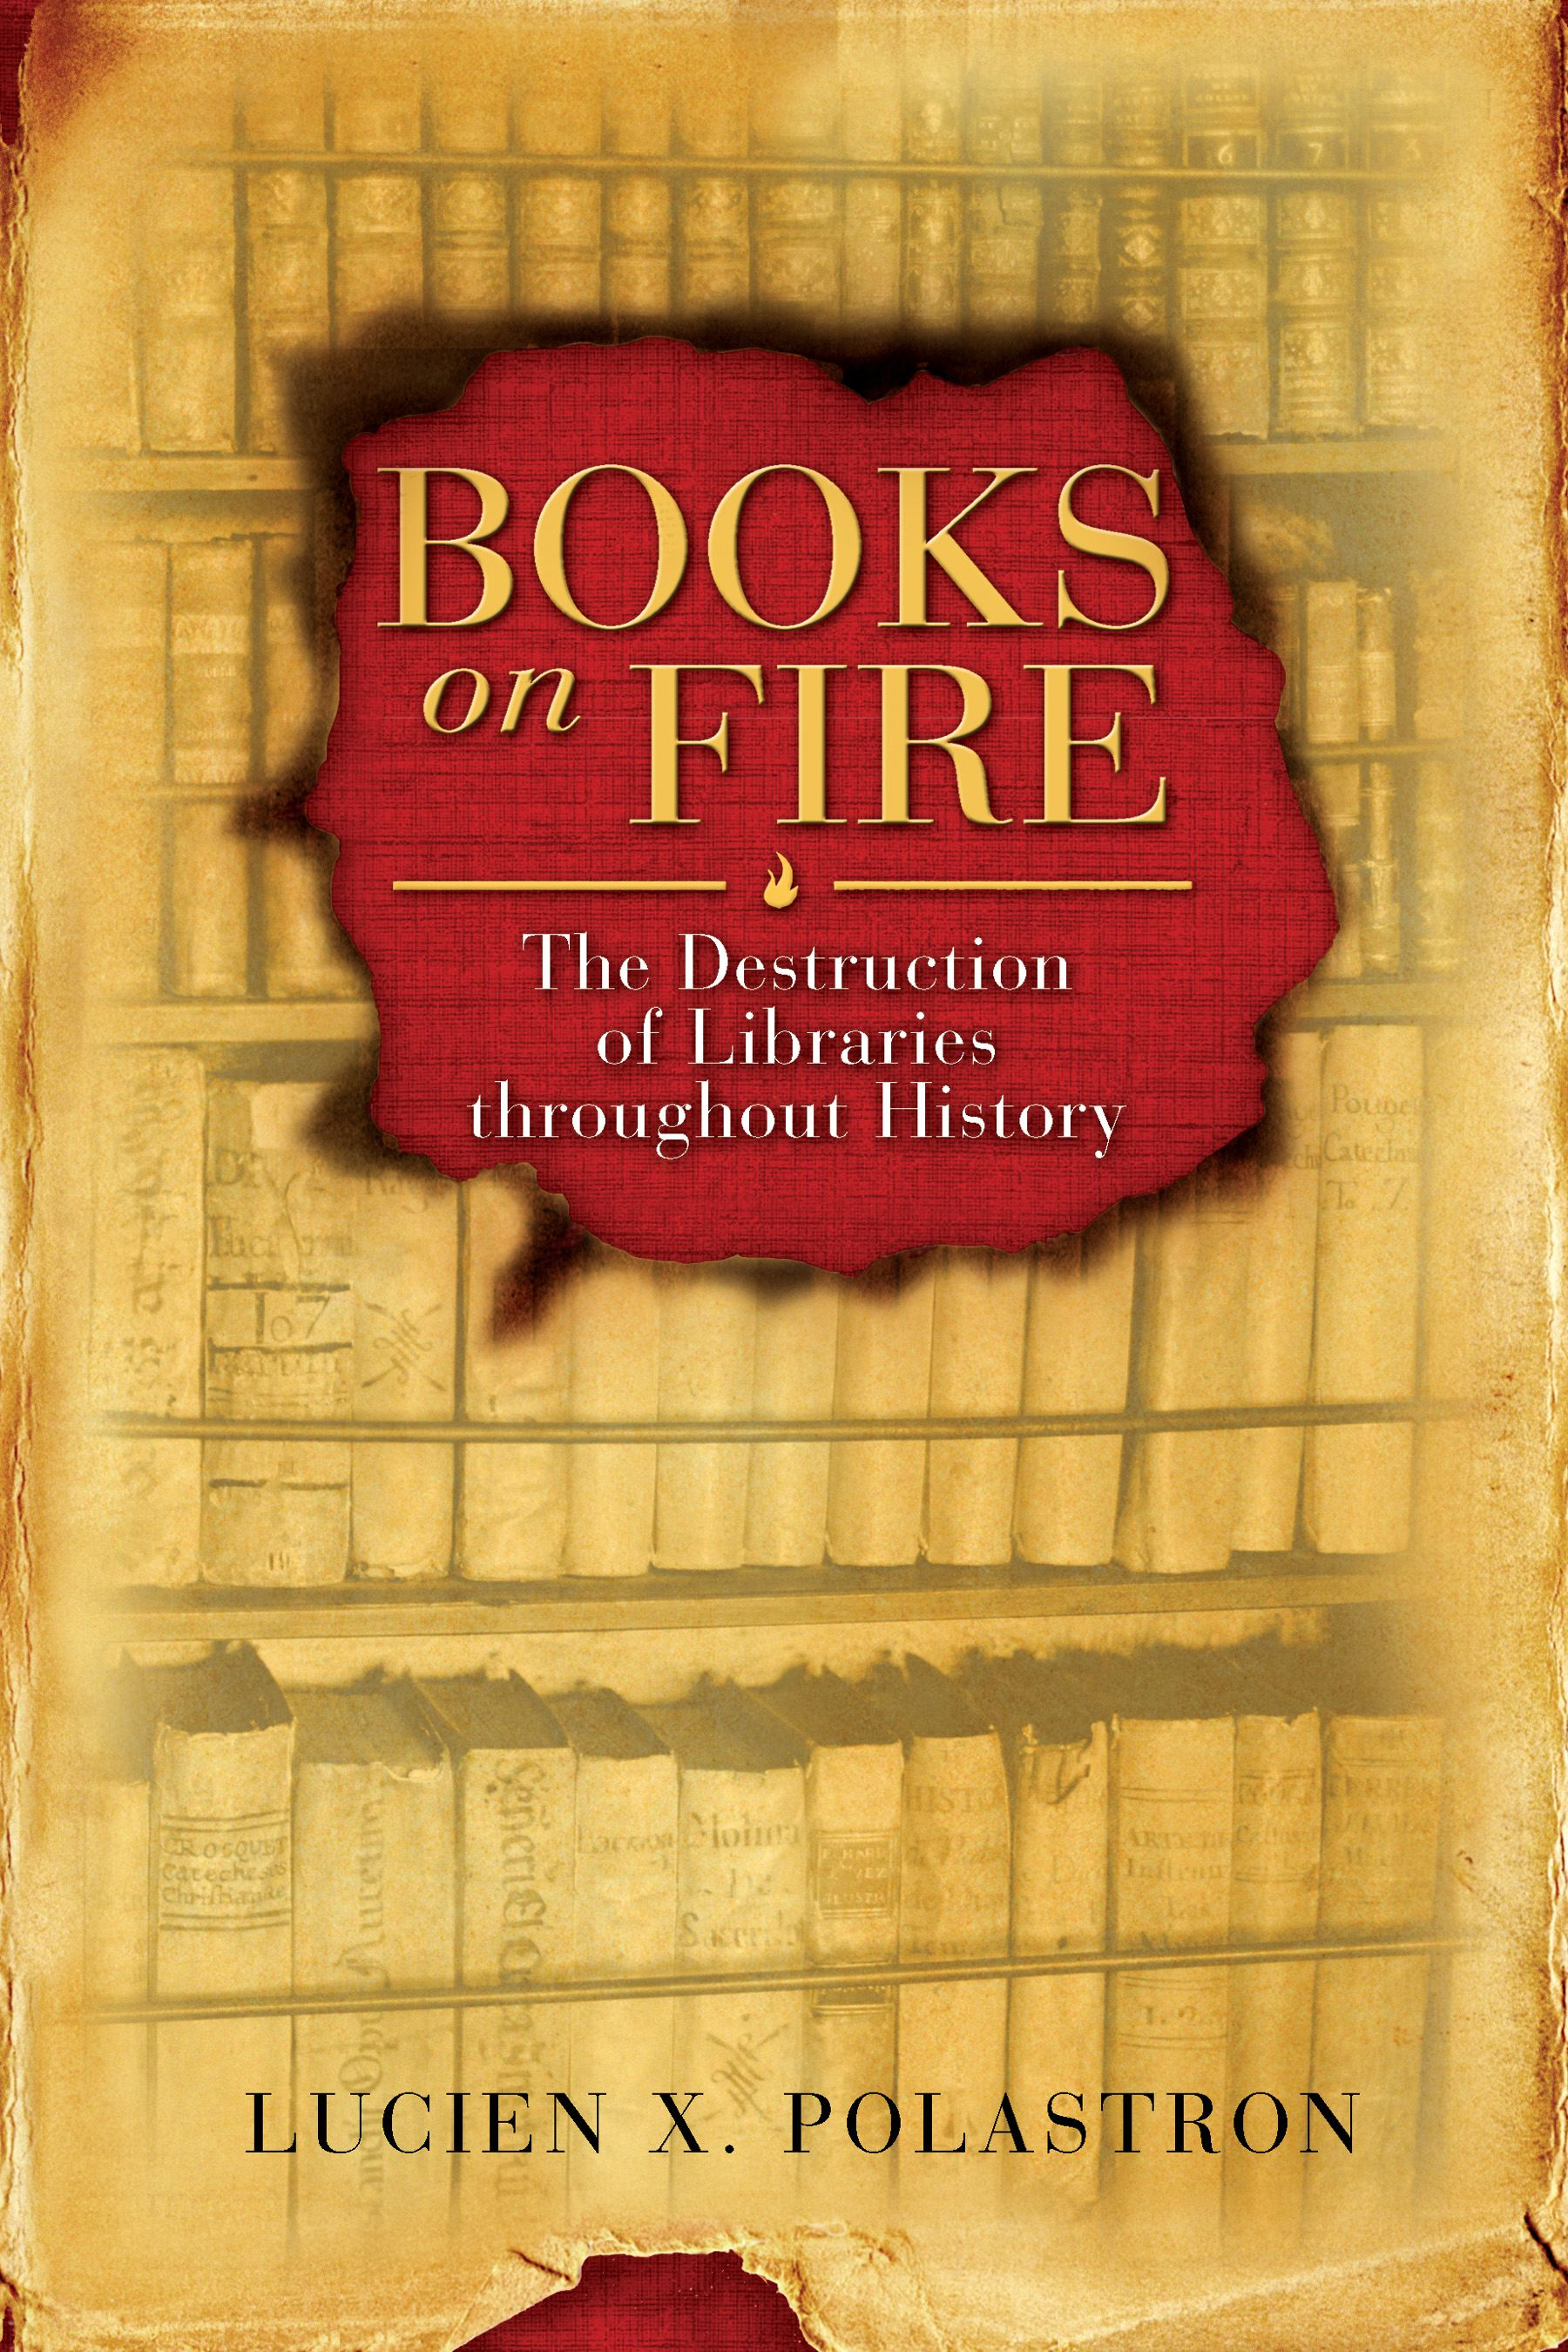 Books on fire 9781594771675 hr